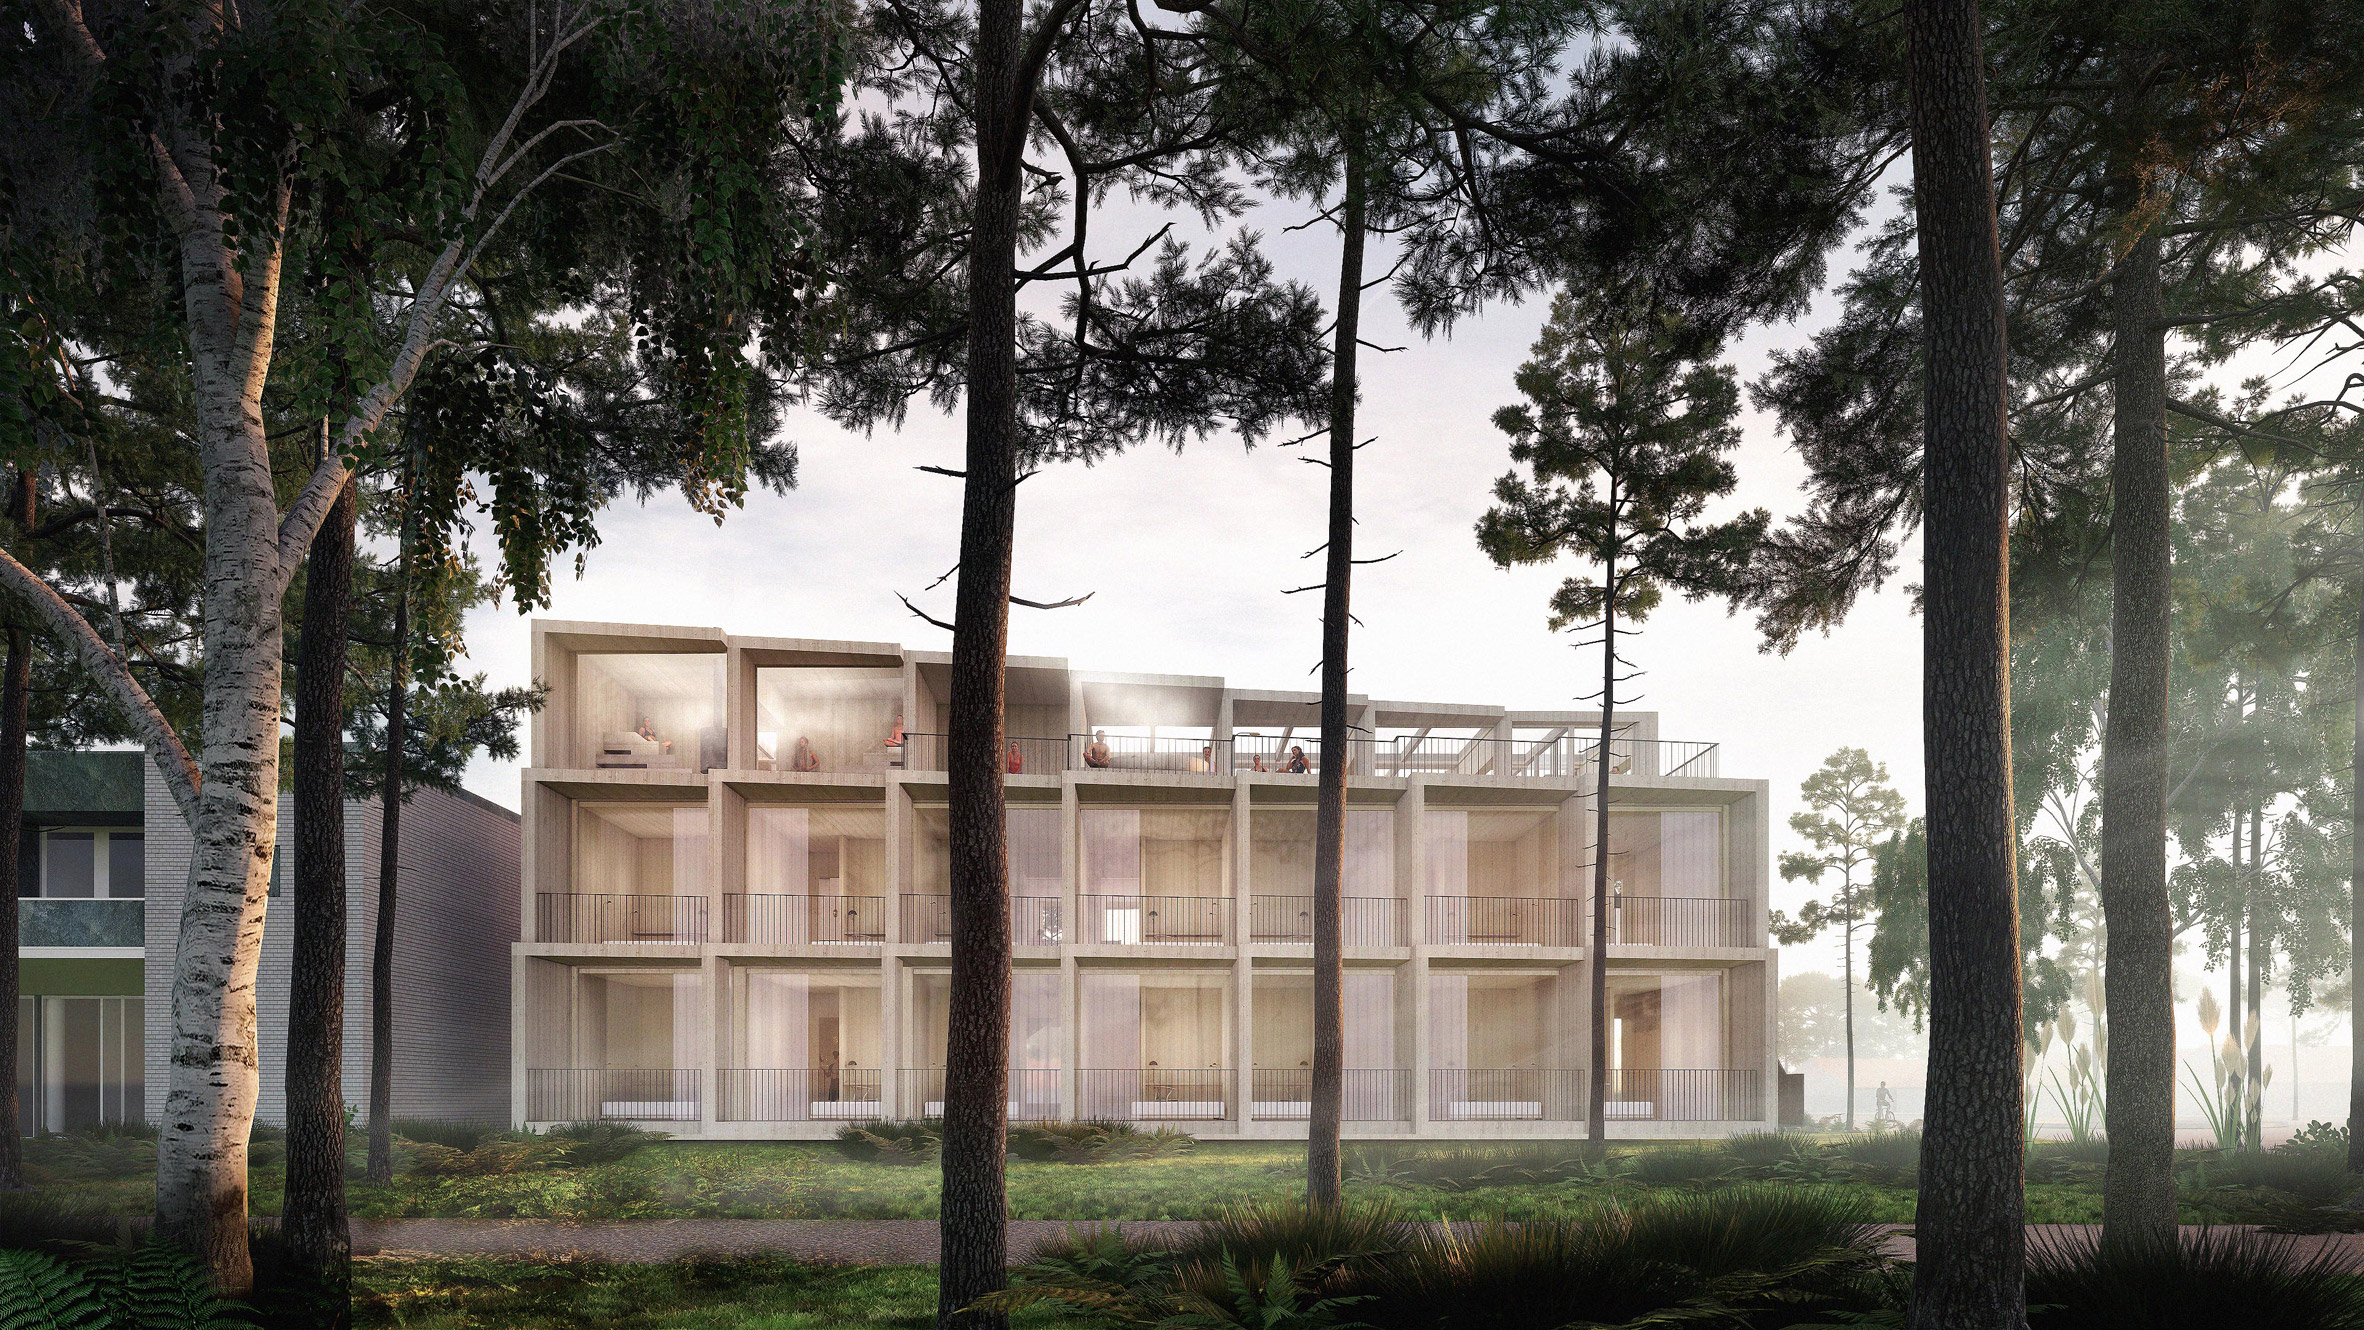 A exterior visual of the proposed Hotel GSH extension by 3XN and GXN